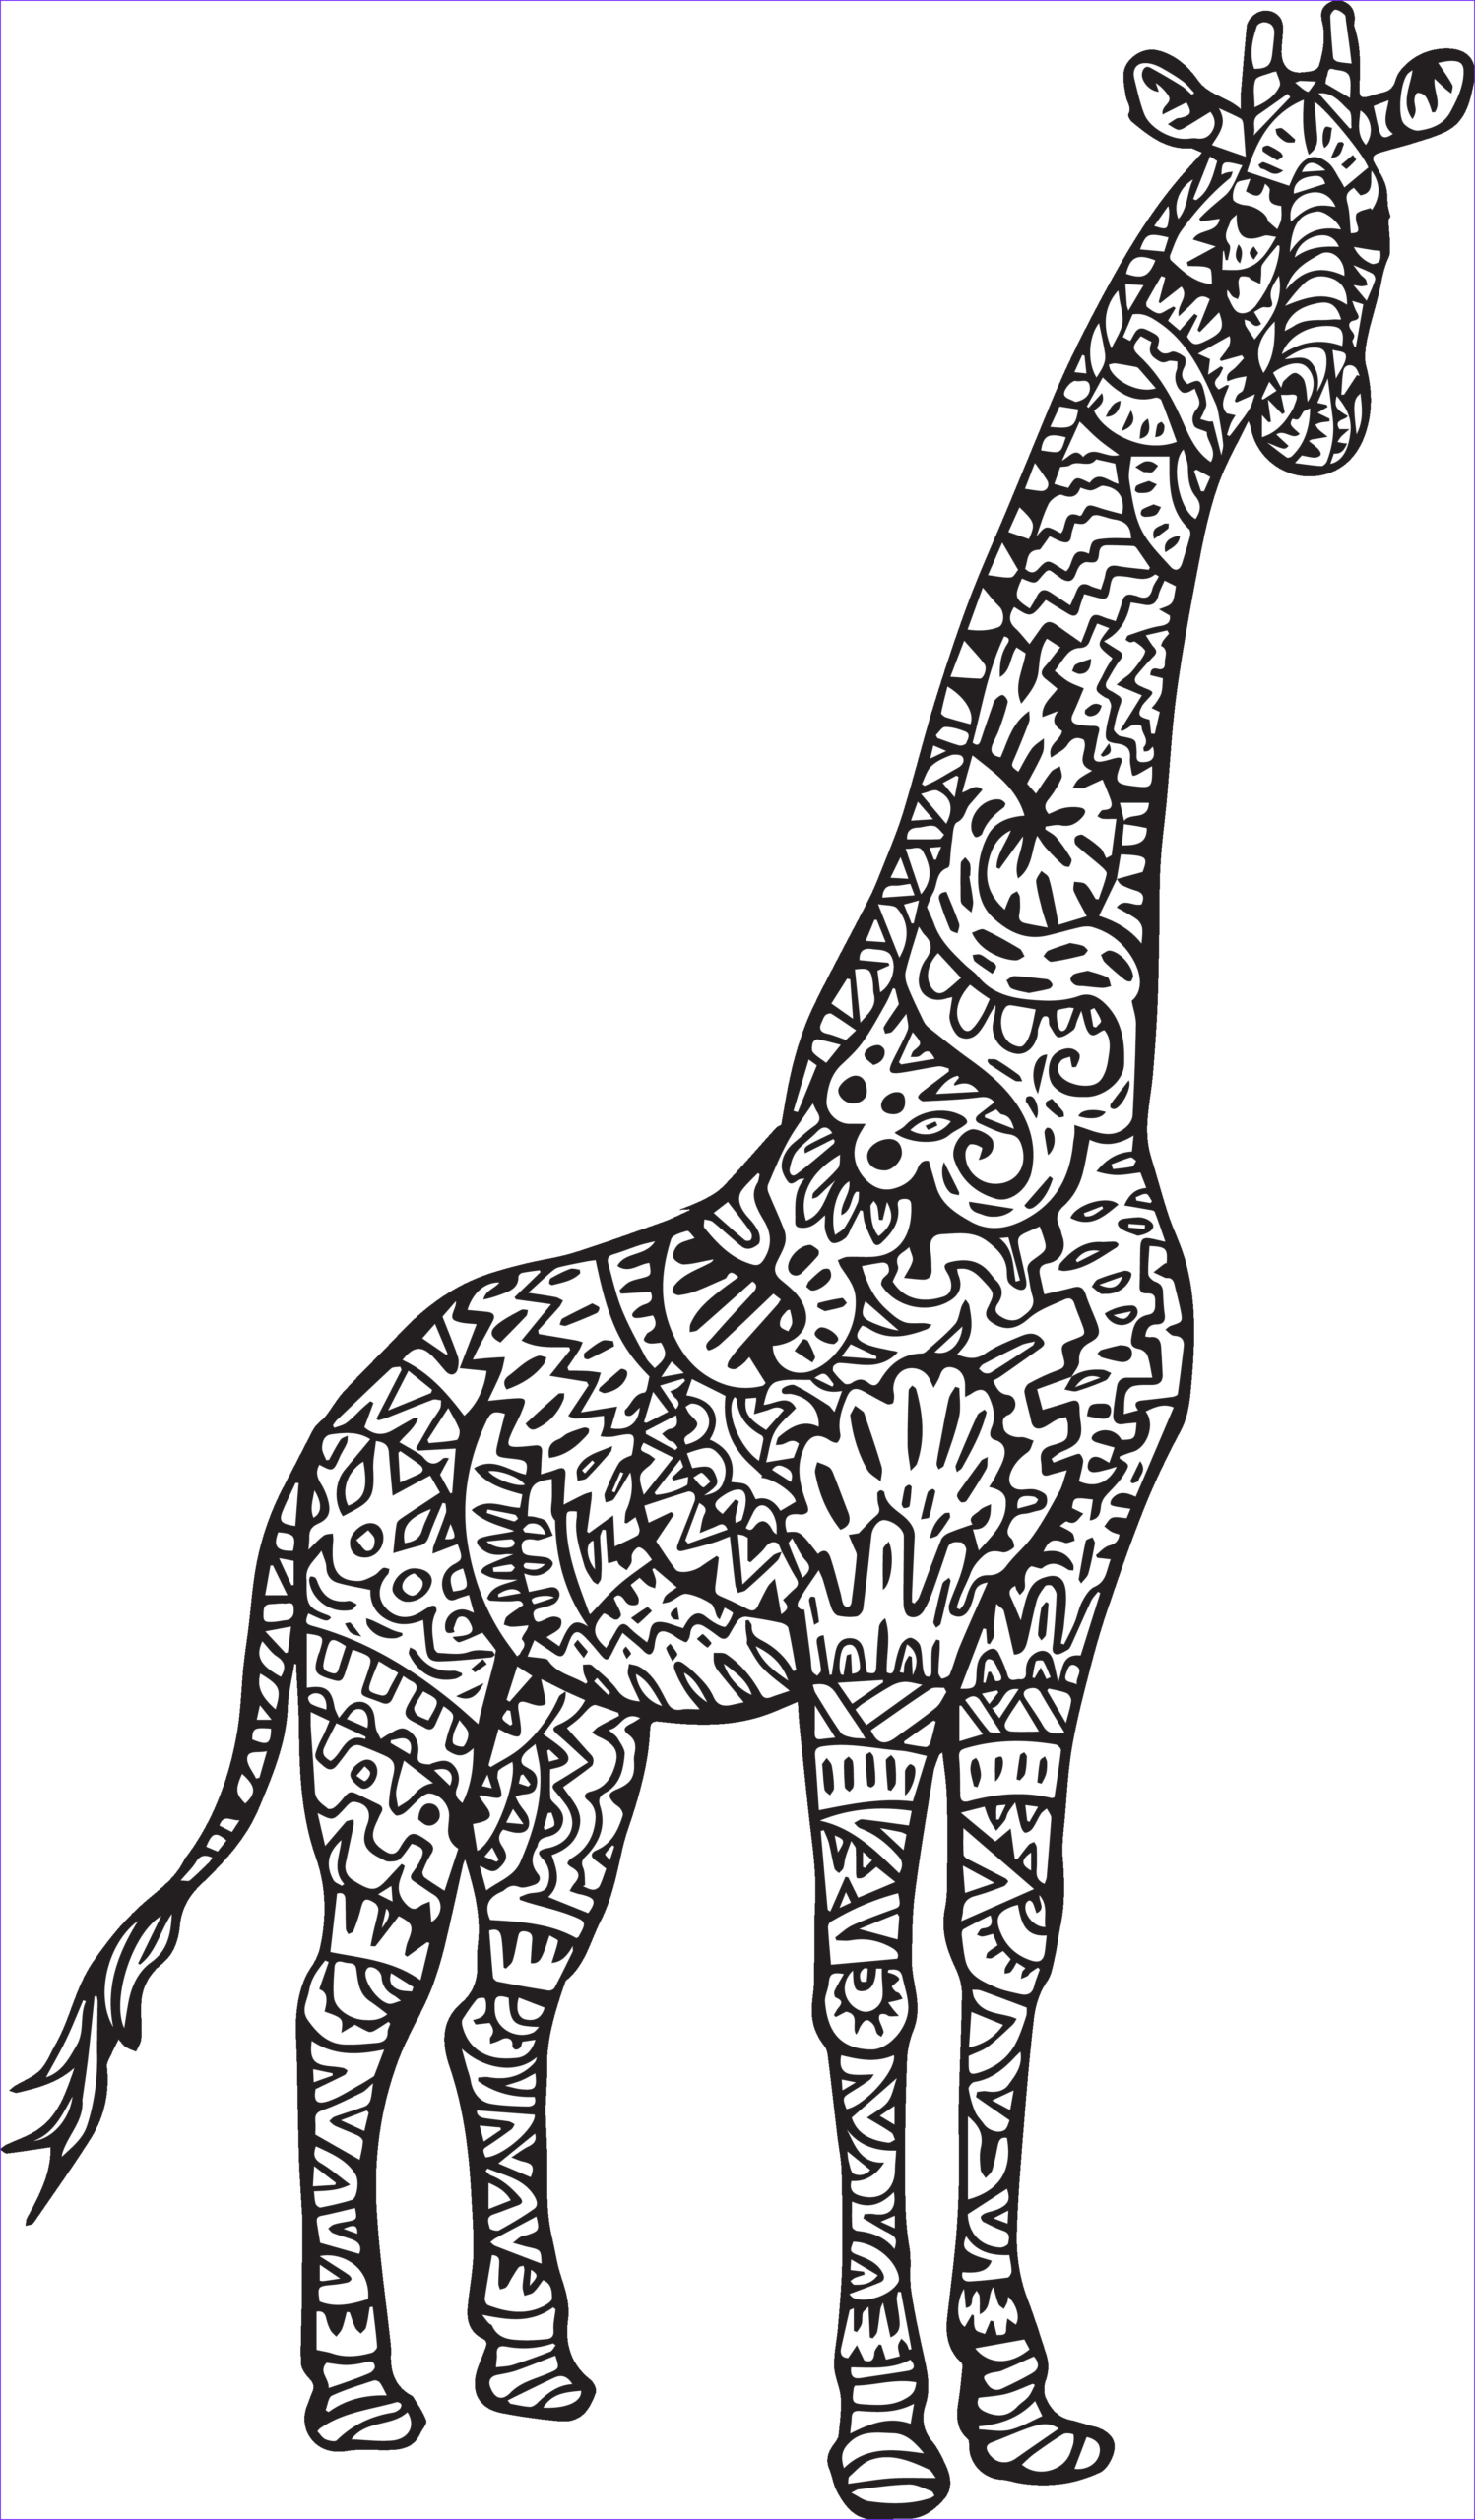 Giraffe Coloring Sheet Inspirational Stock April S Baby Has Arrived and Here is the Video Hip